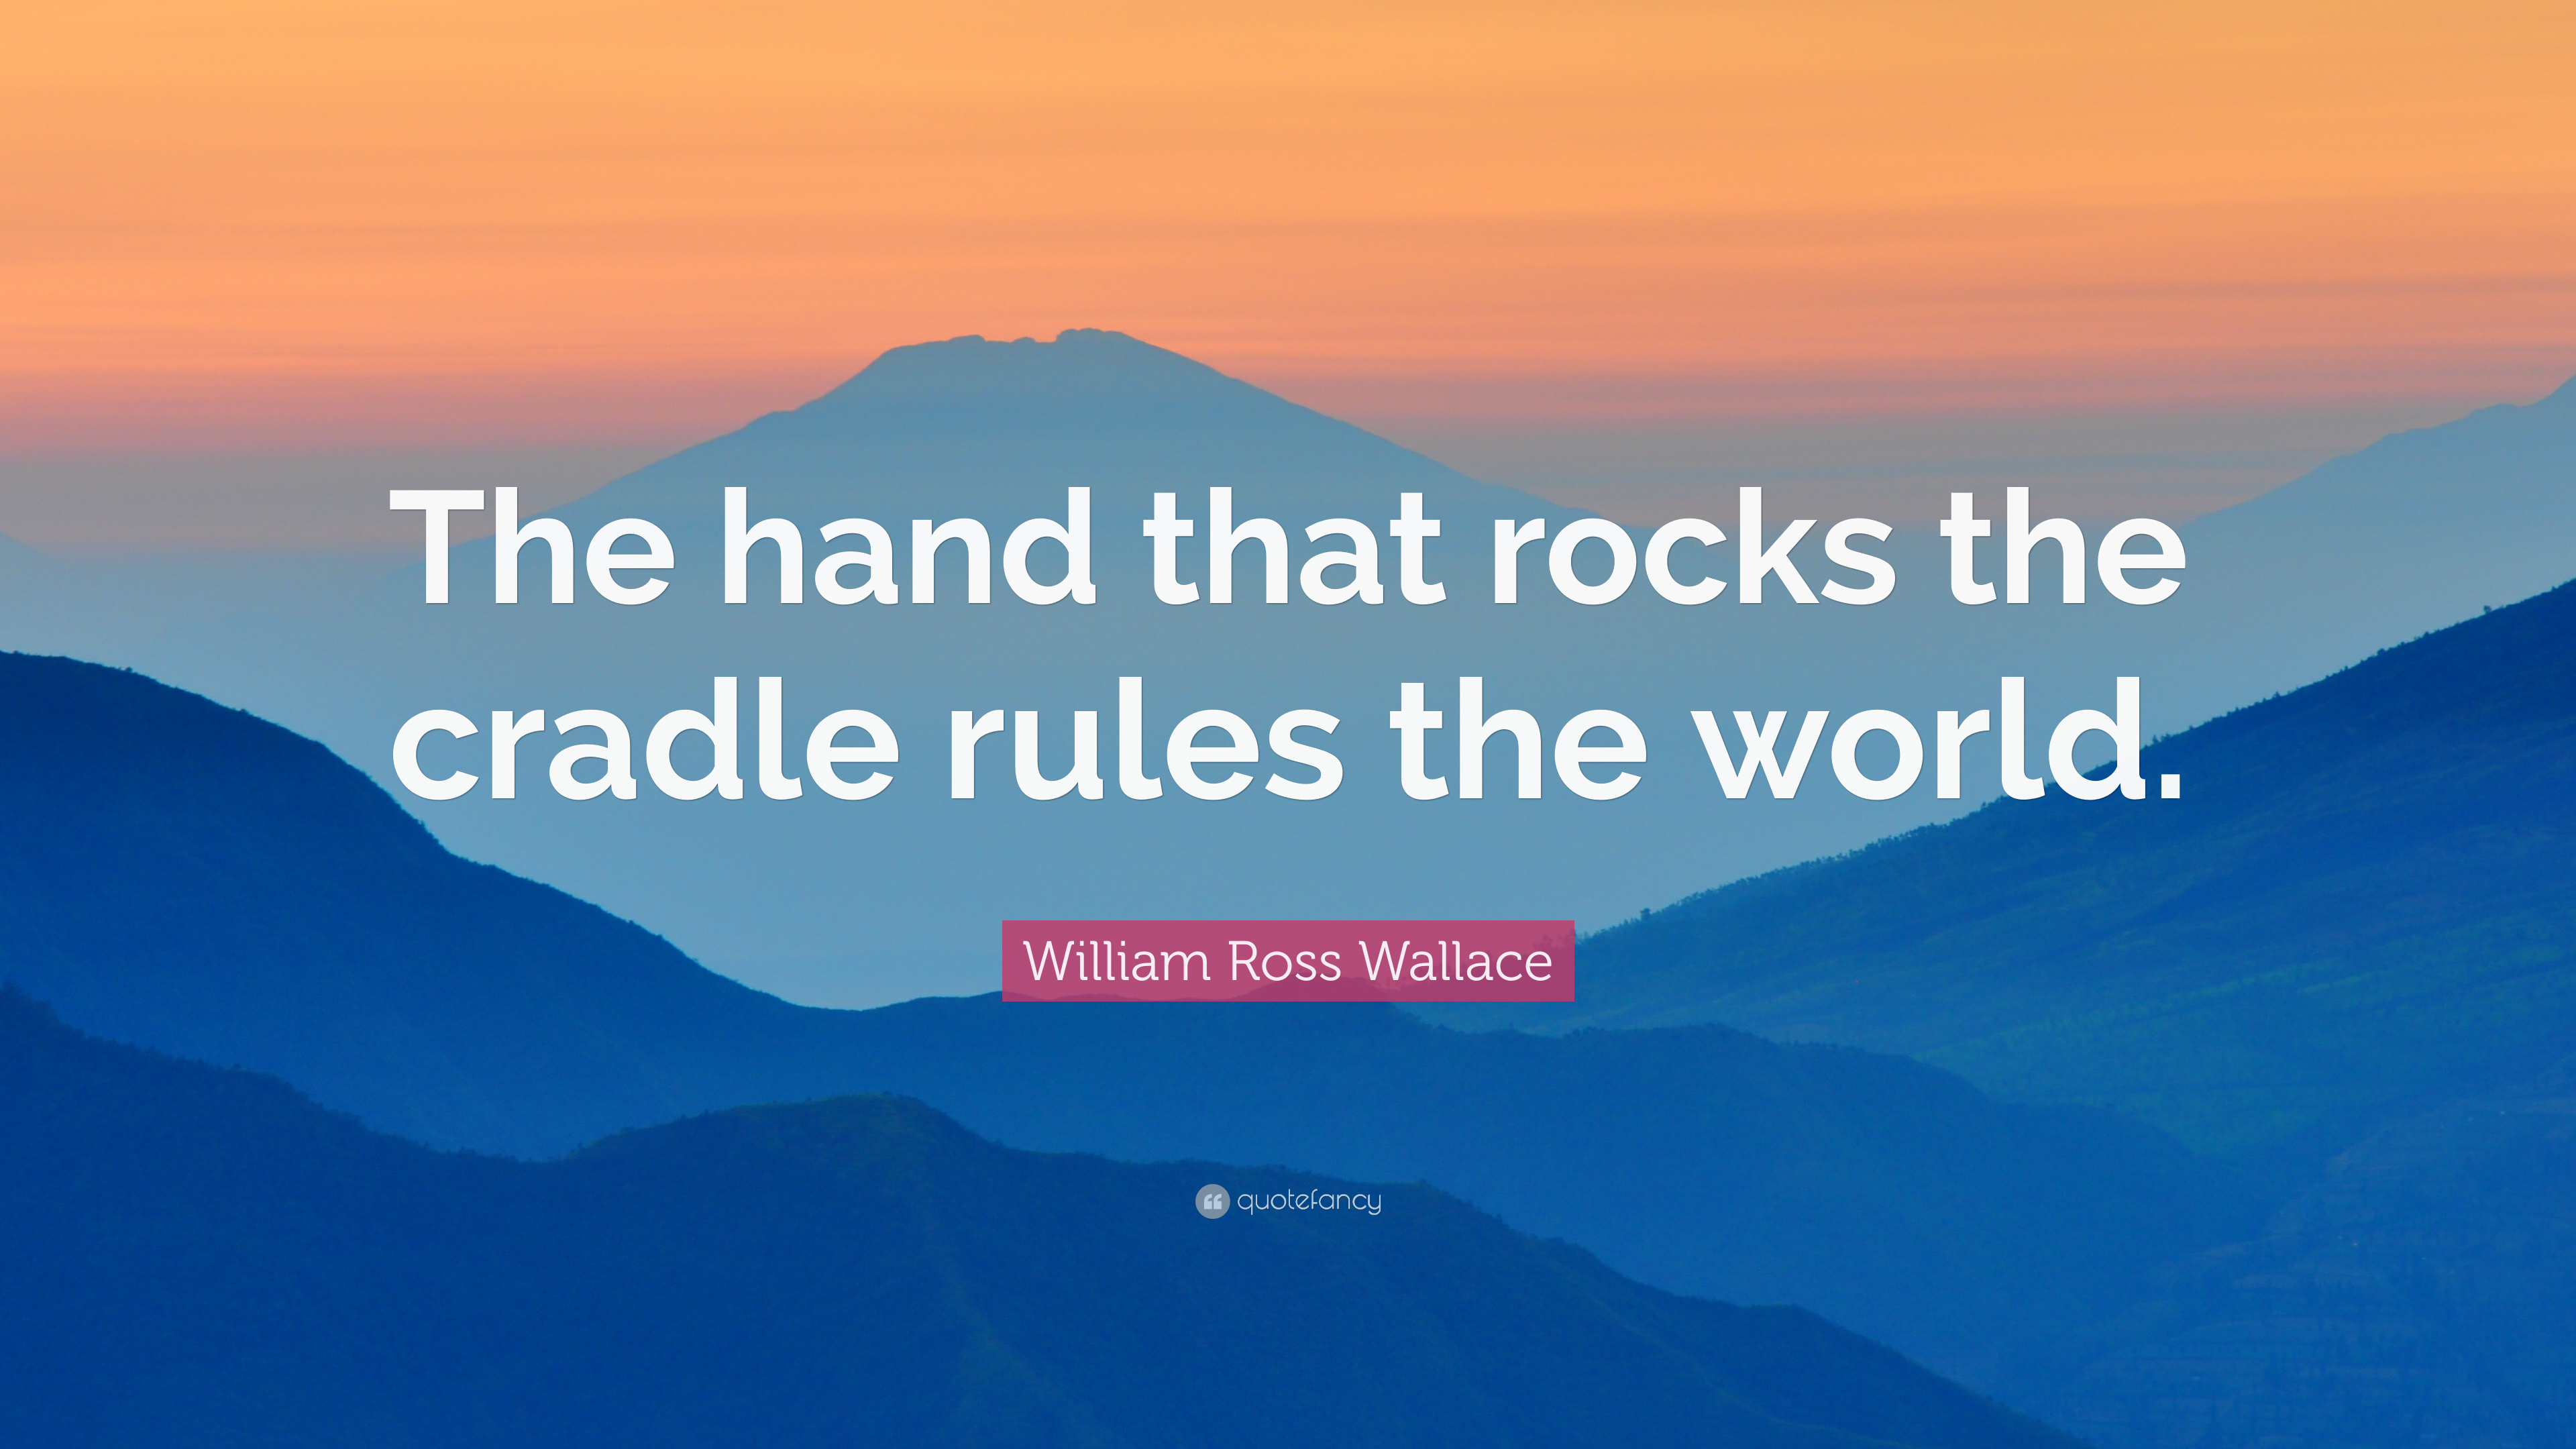 The Hand That Rocks the Cradle Rules the World Essay